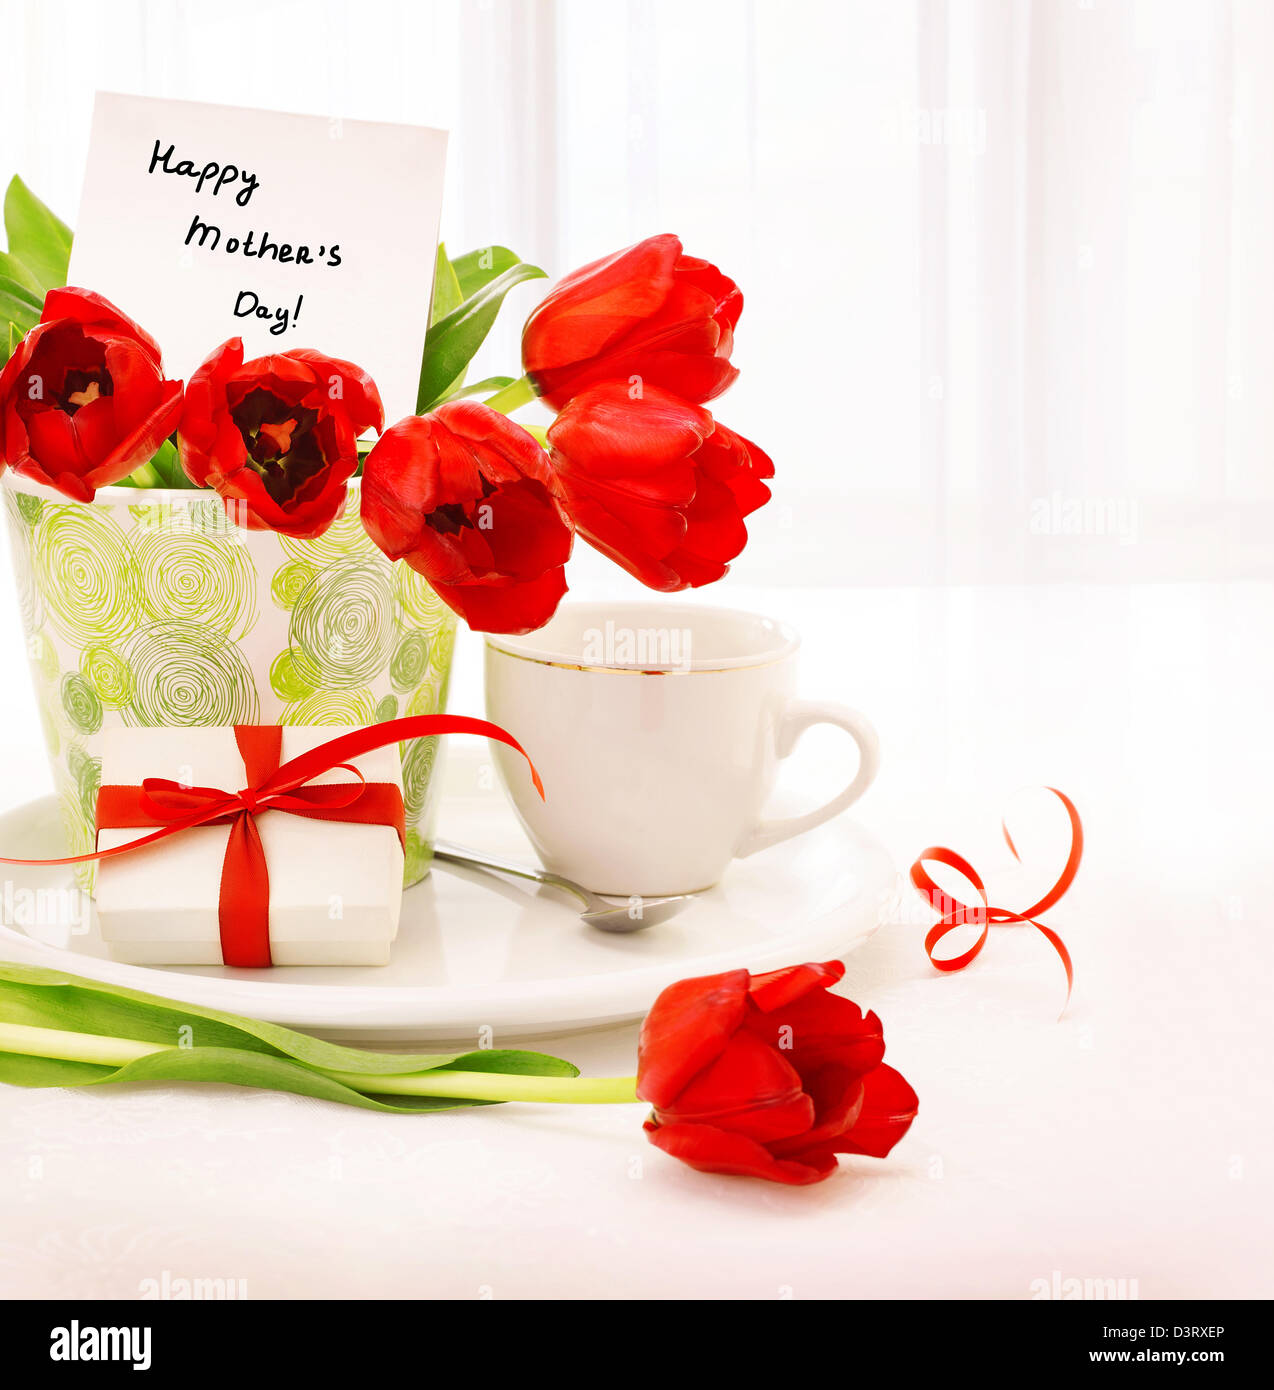 Happy Birthday Card Cup Tea Stock Photos & Happy Birthday Card Cup ...